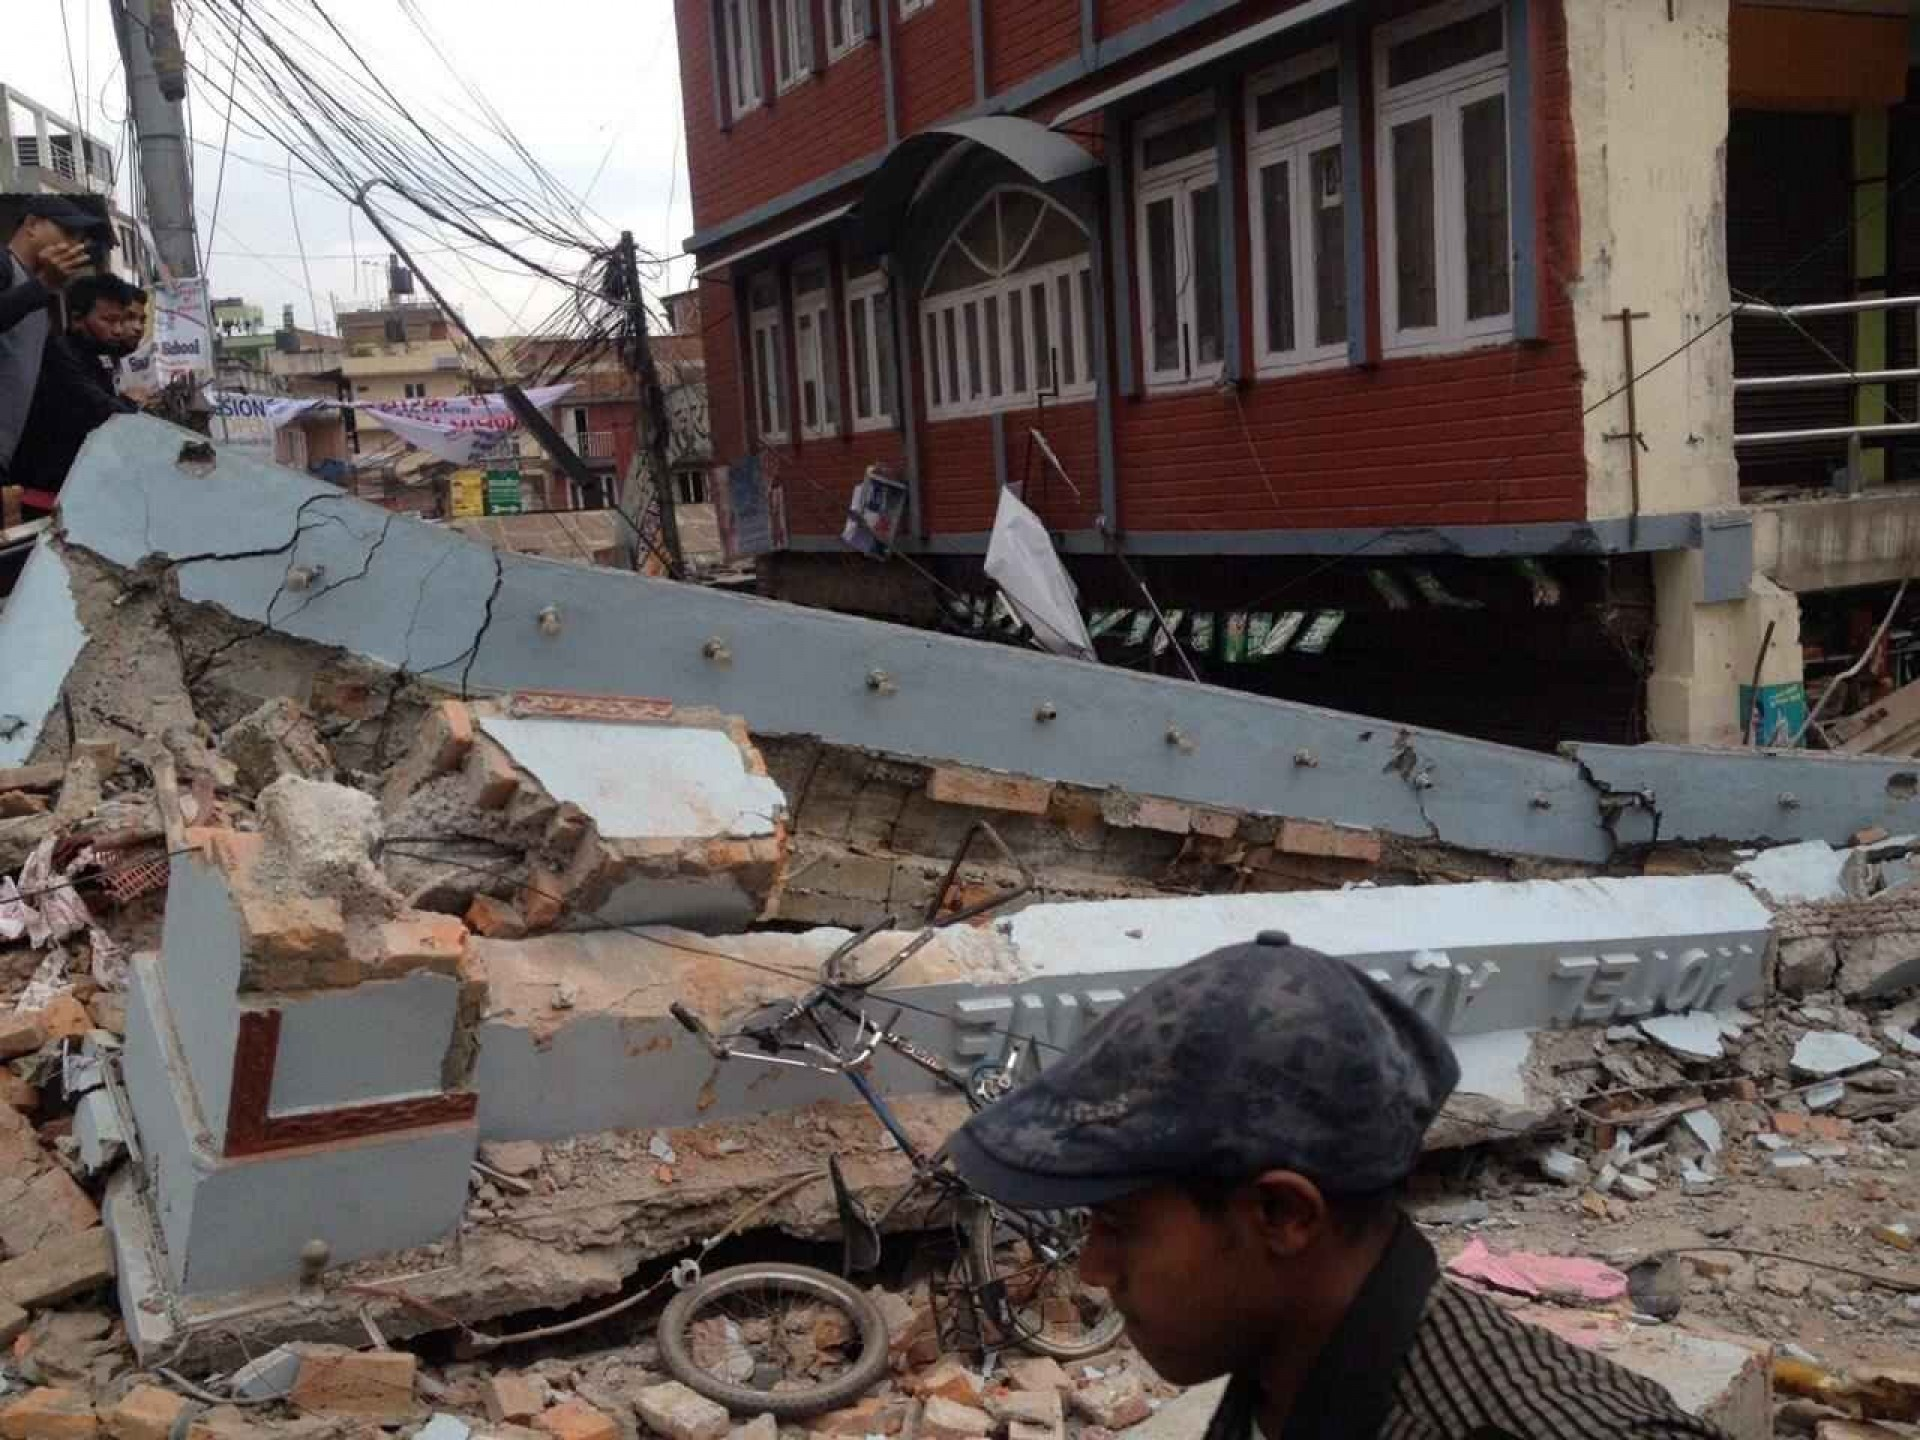 012 Essay On Earthquake Example Nepal 2015 01 Impressive Occurred In India During 2011-12 English Hindi 1920